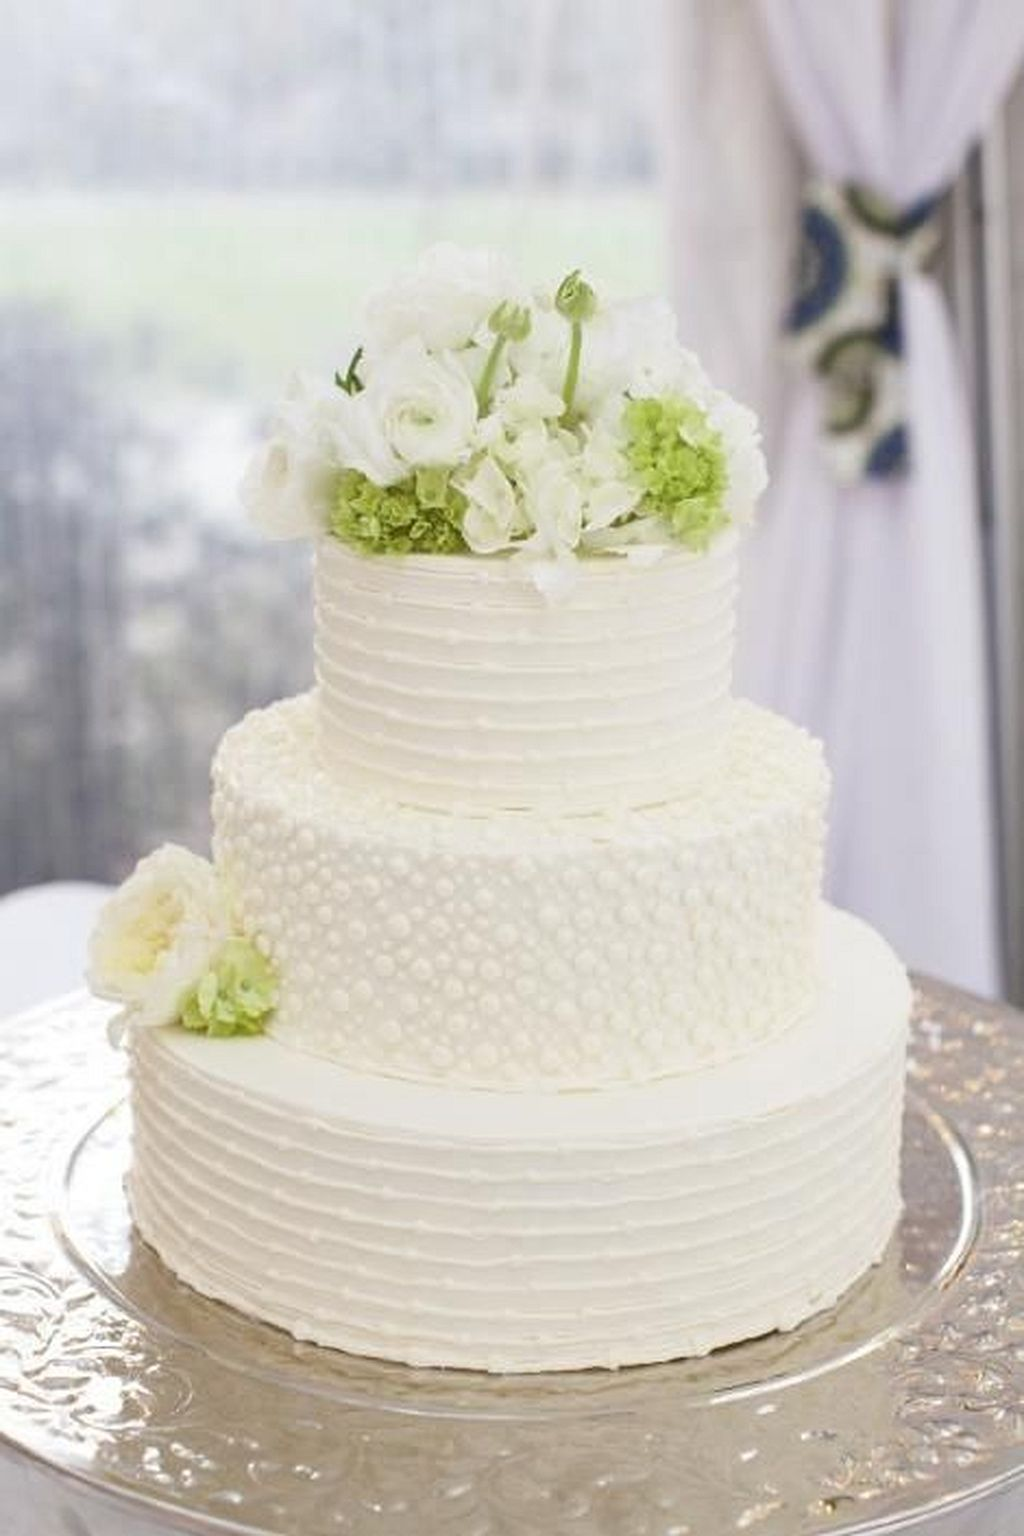 30+ Elegant White Wedding Cake | White wedding cakes, Wedding cake ...